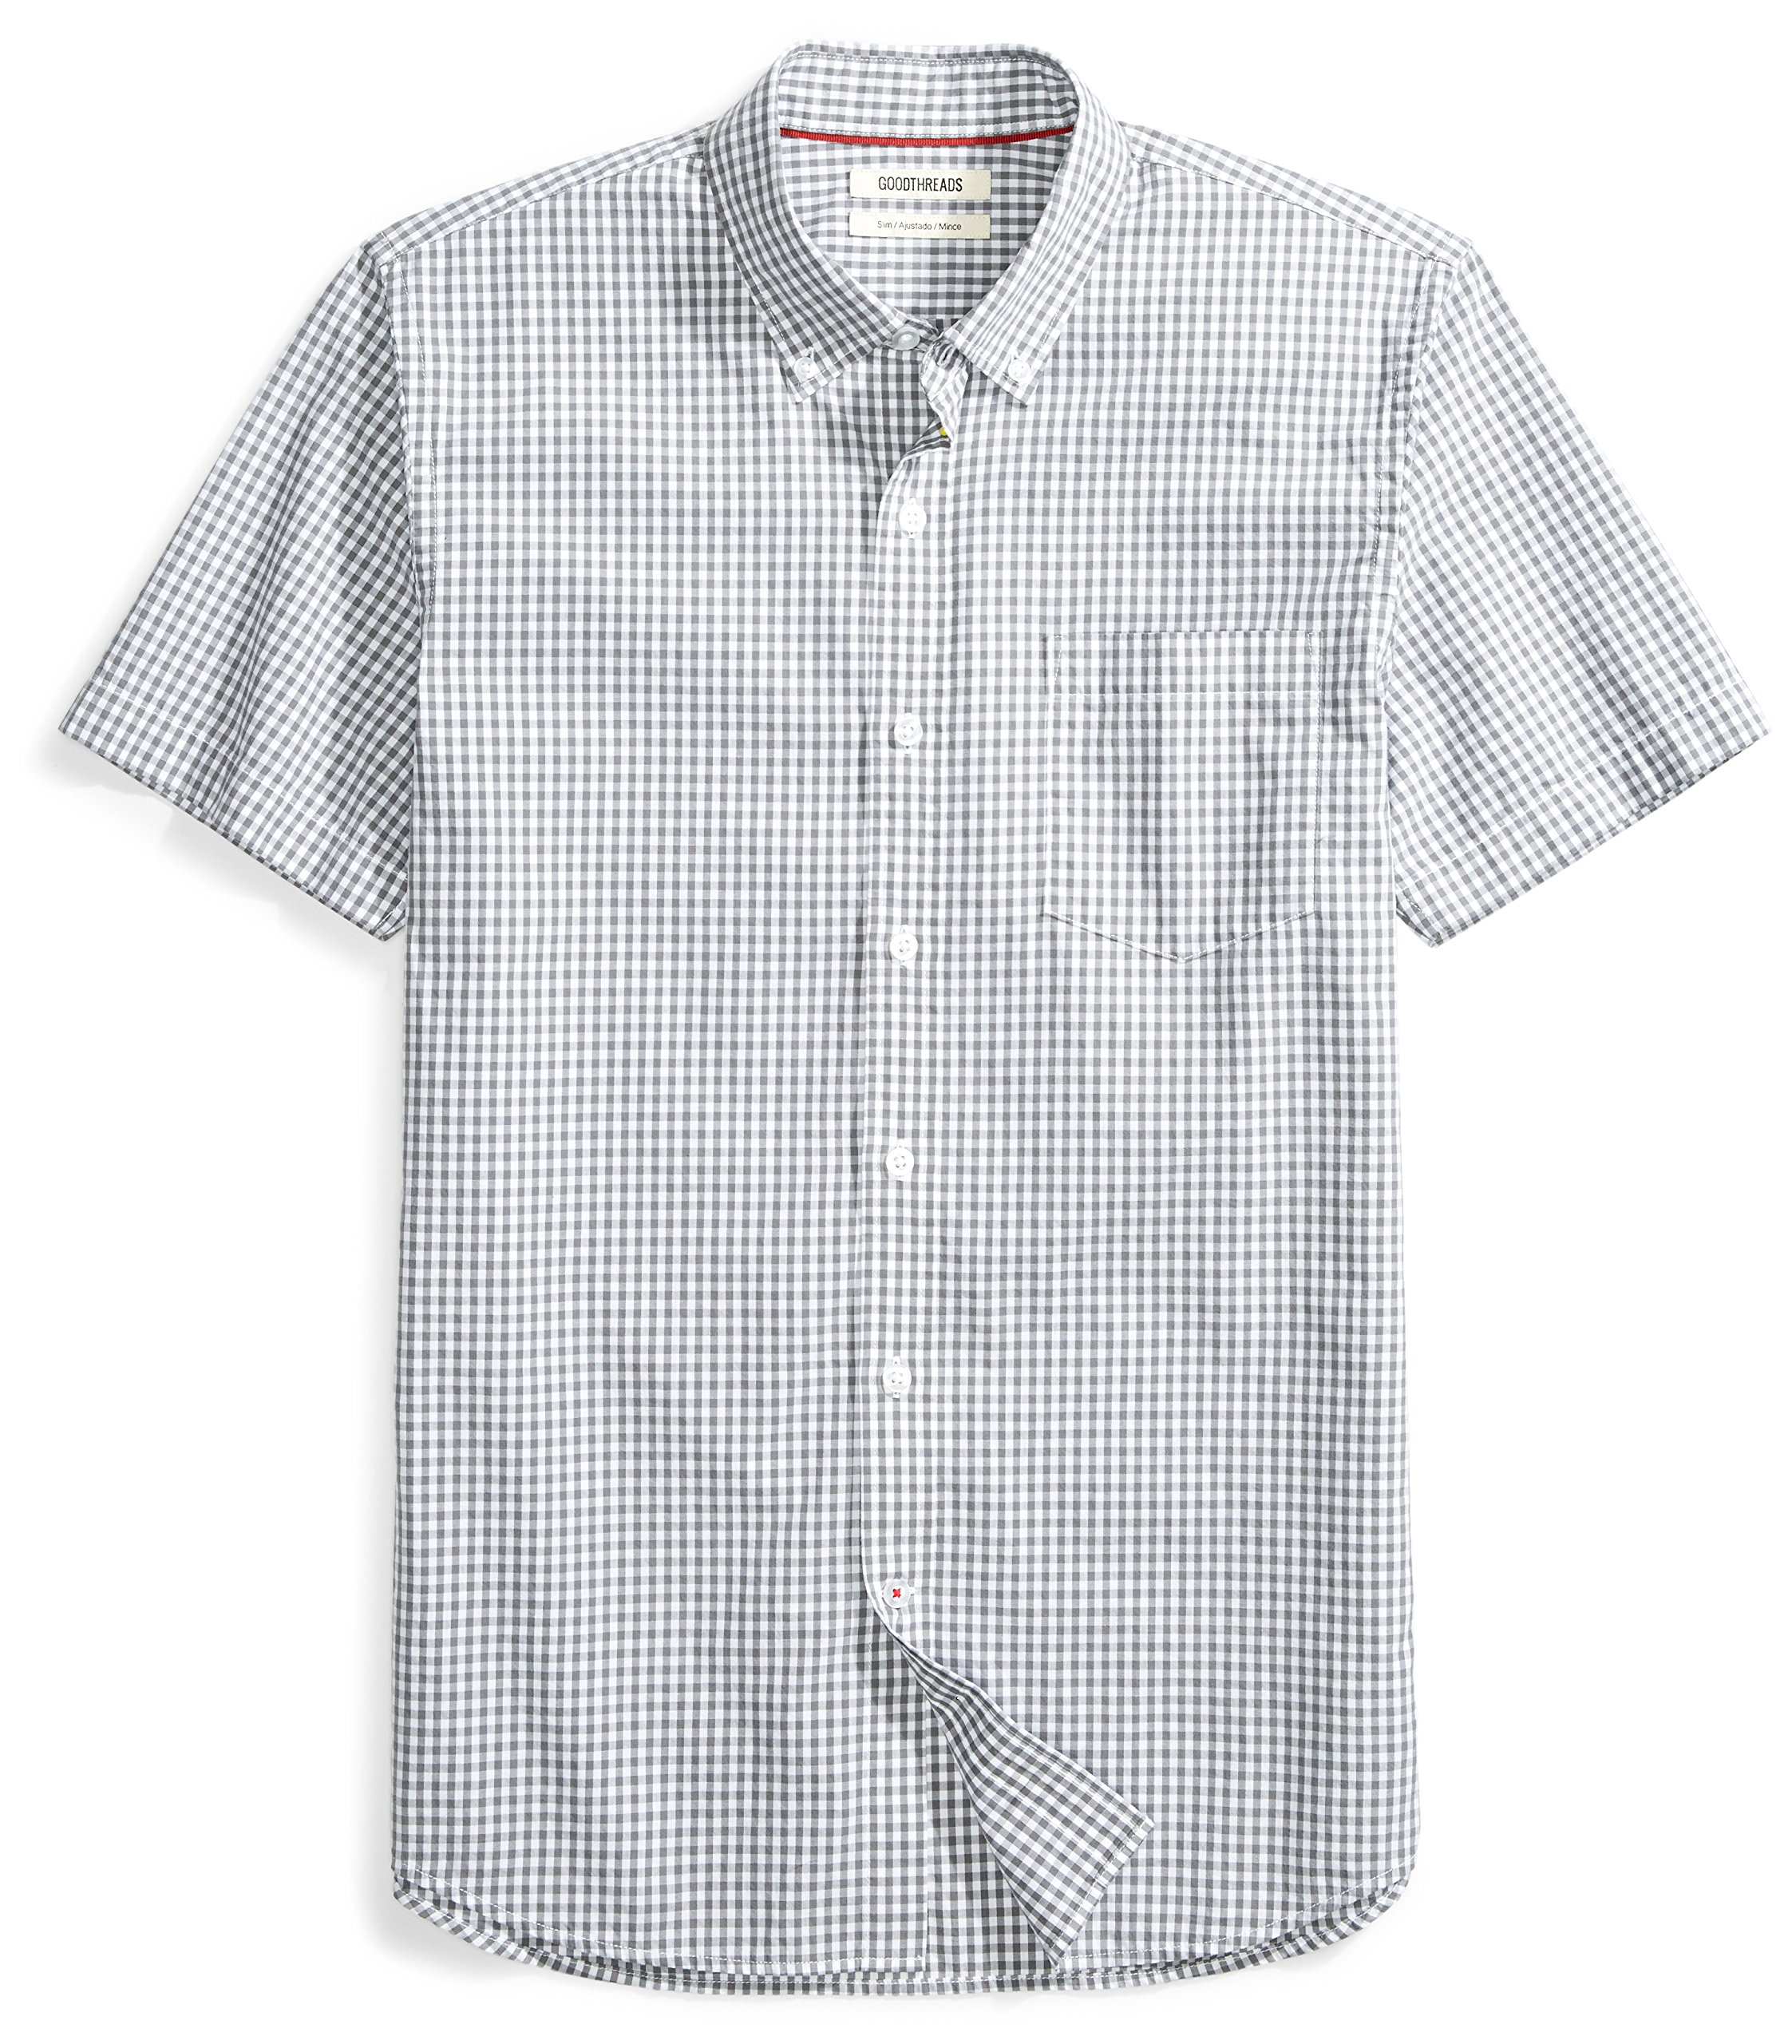 Goodthreads Men's Slim-Fit Short-Sleeve Two-Color Check Shirt Shirt, White/Grey, Medium